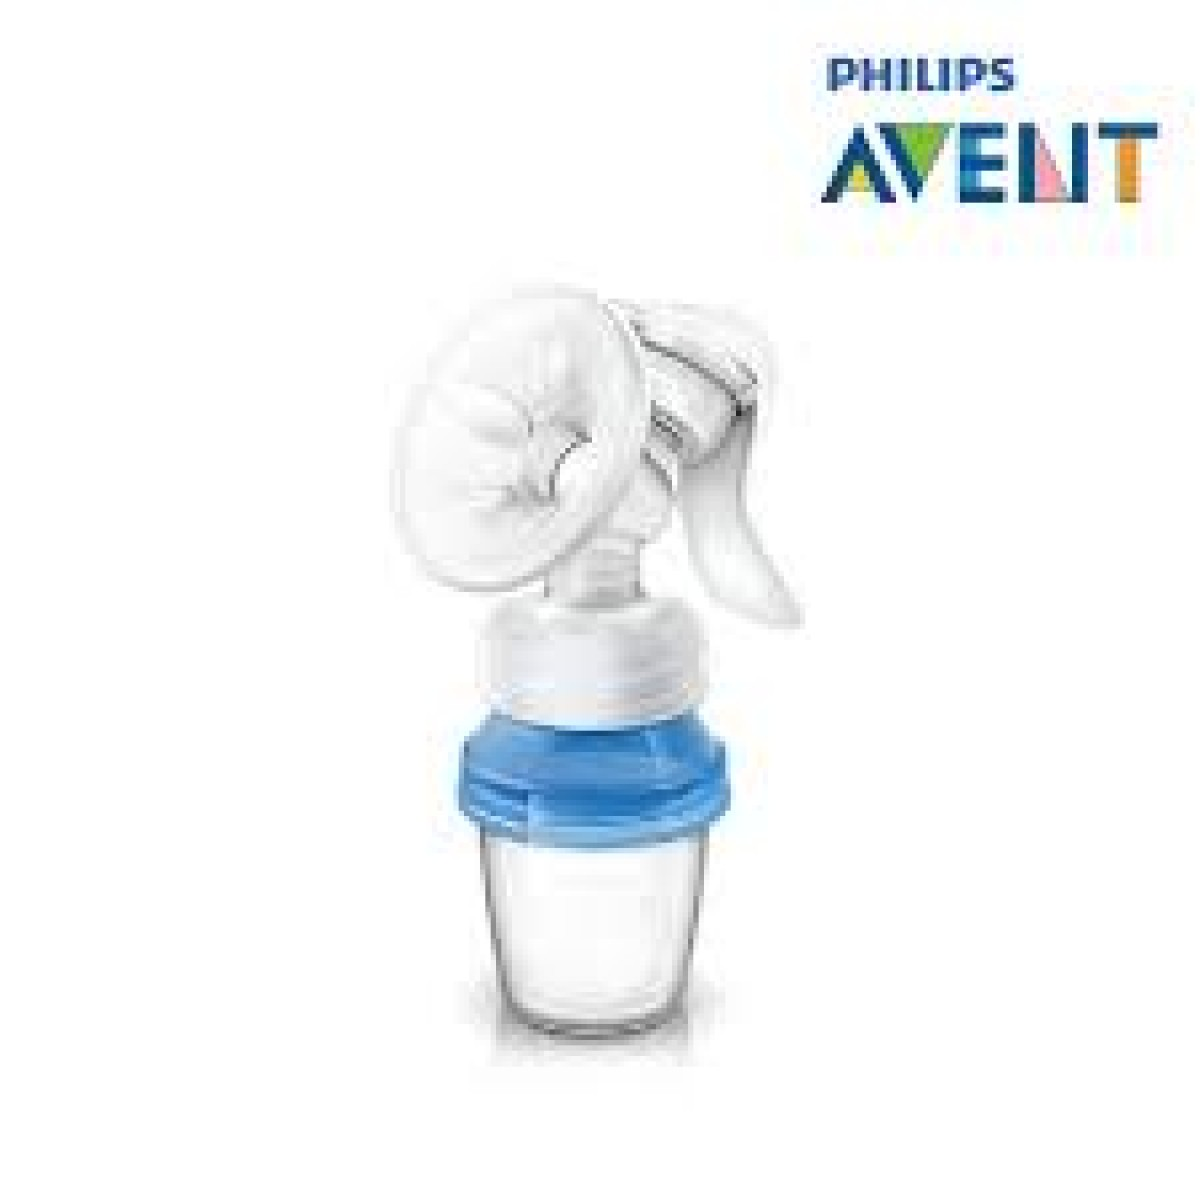 Avent Natural Manual Breast Pump With Milk Stroga Cups - Kico Baby Center